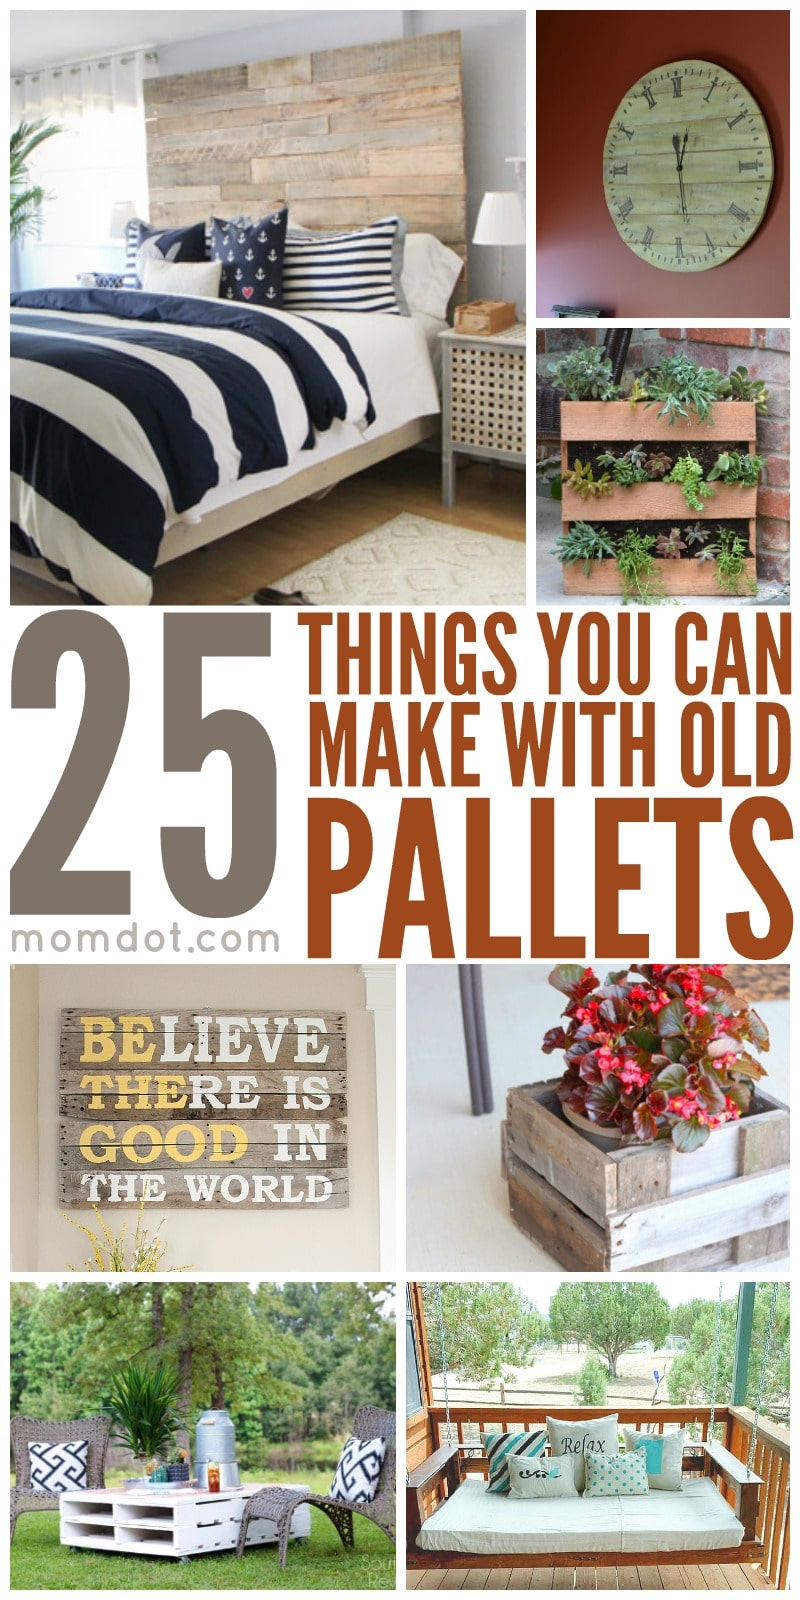 25 Things You Can Make With Old Pallets